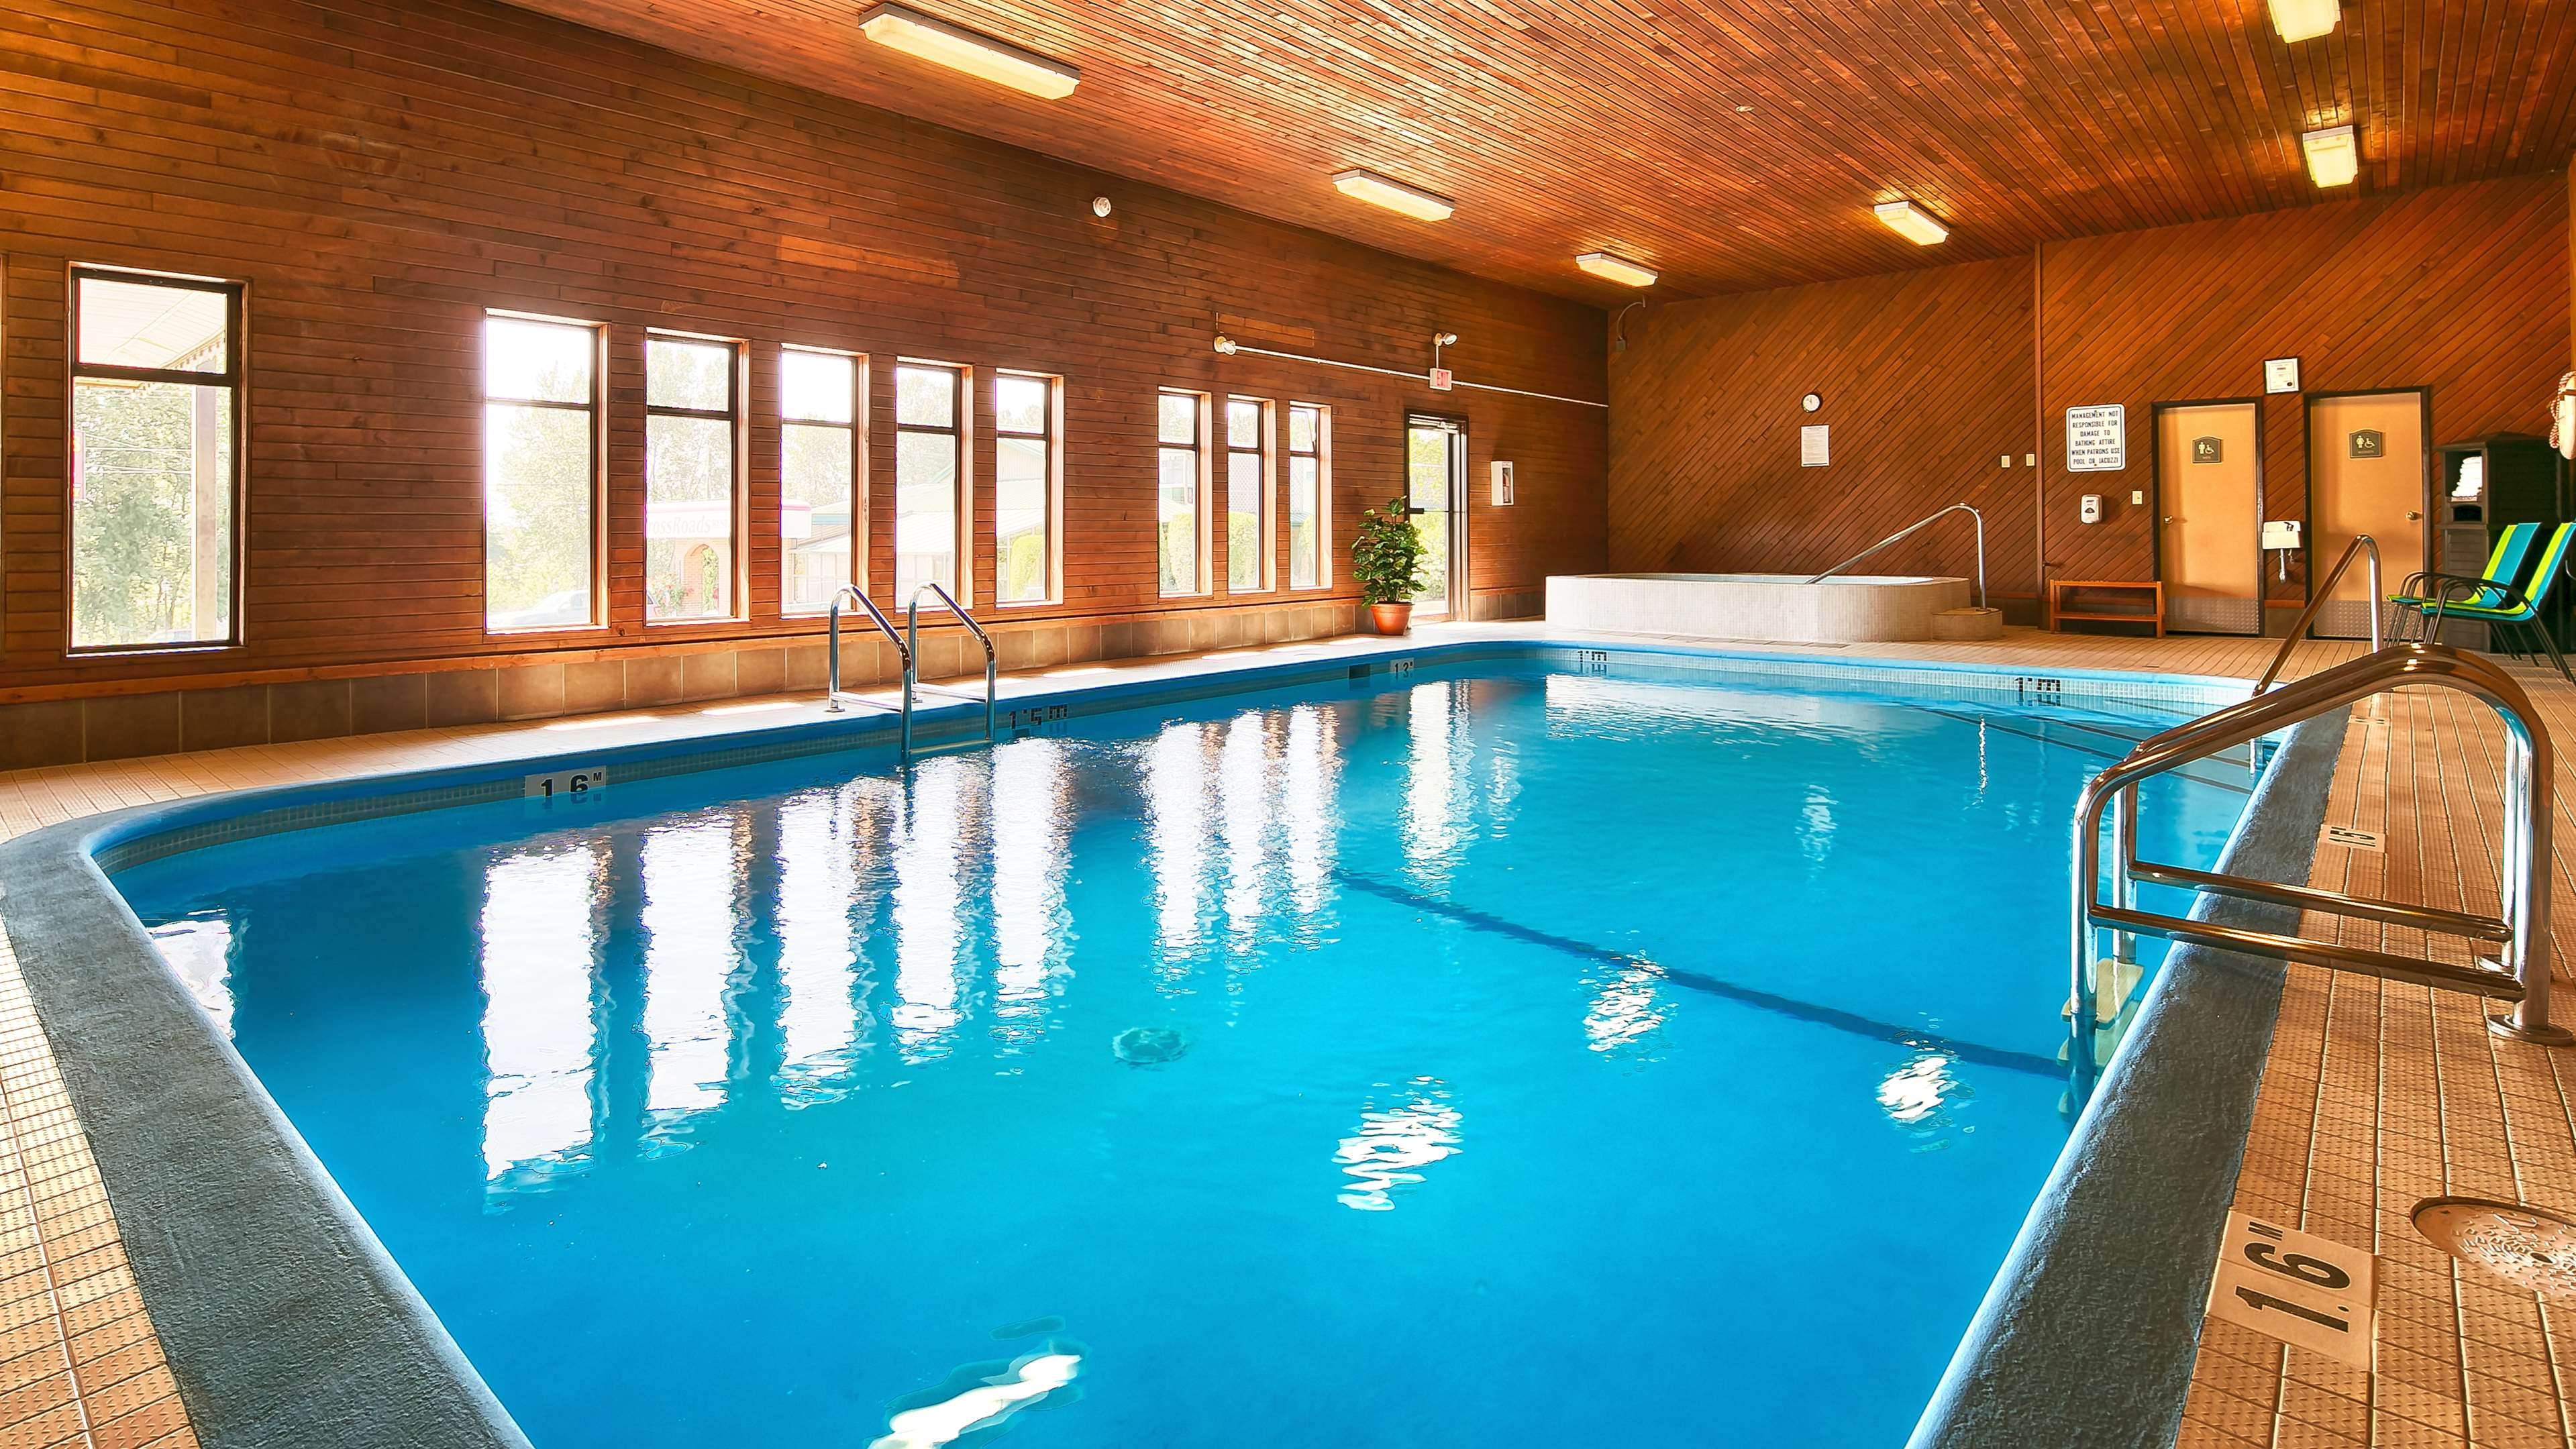 Best Western Bakerview Inn in Abbotsford: Indoor Swimming Pool And Hot Tub